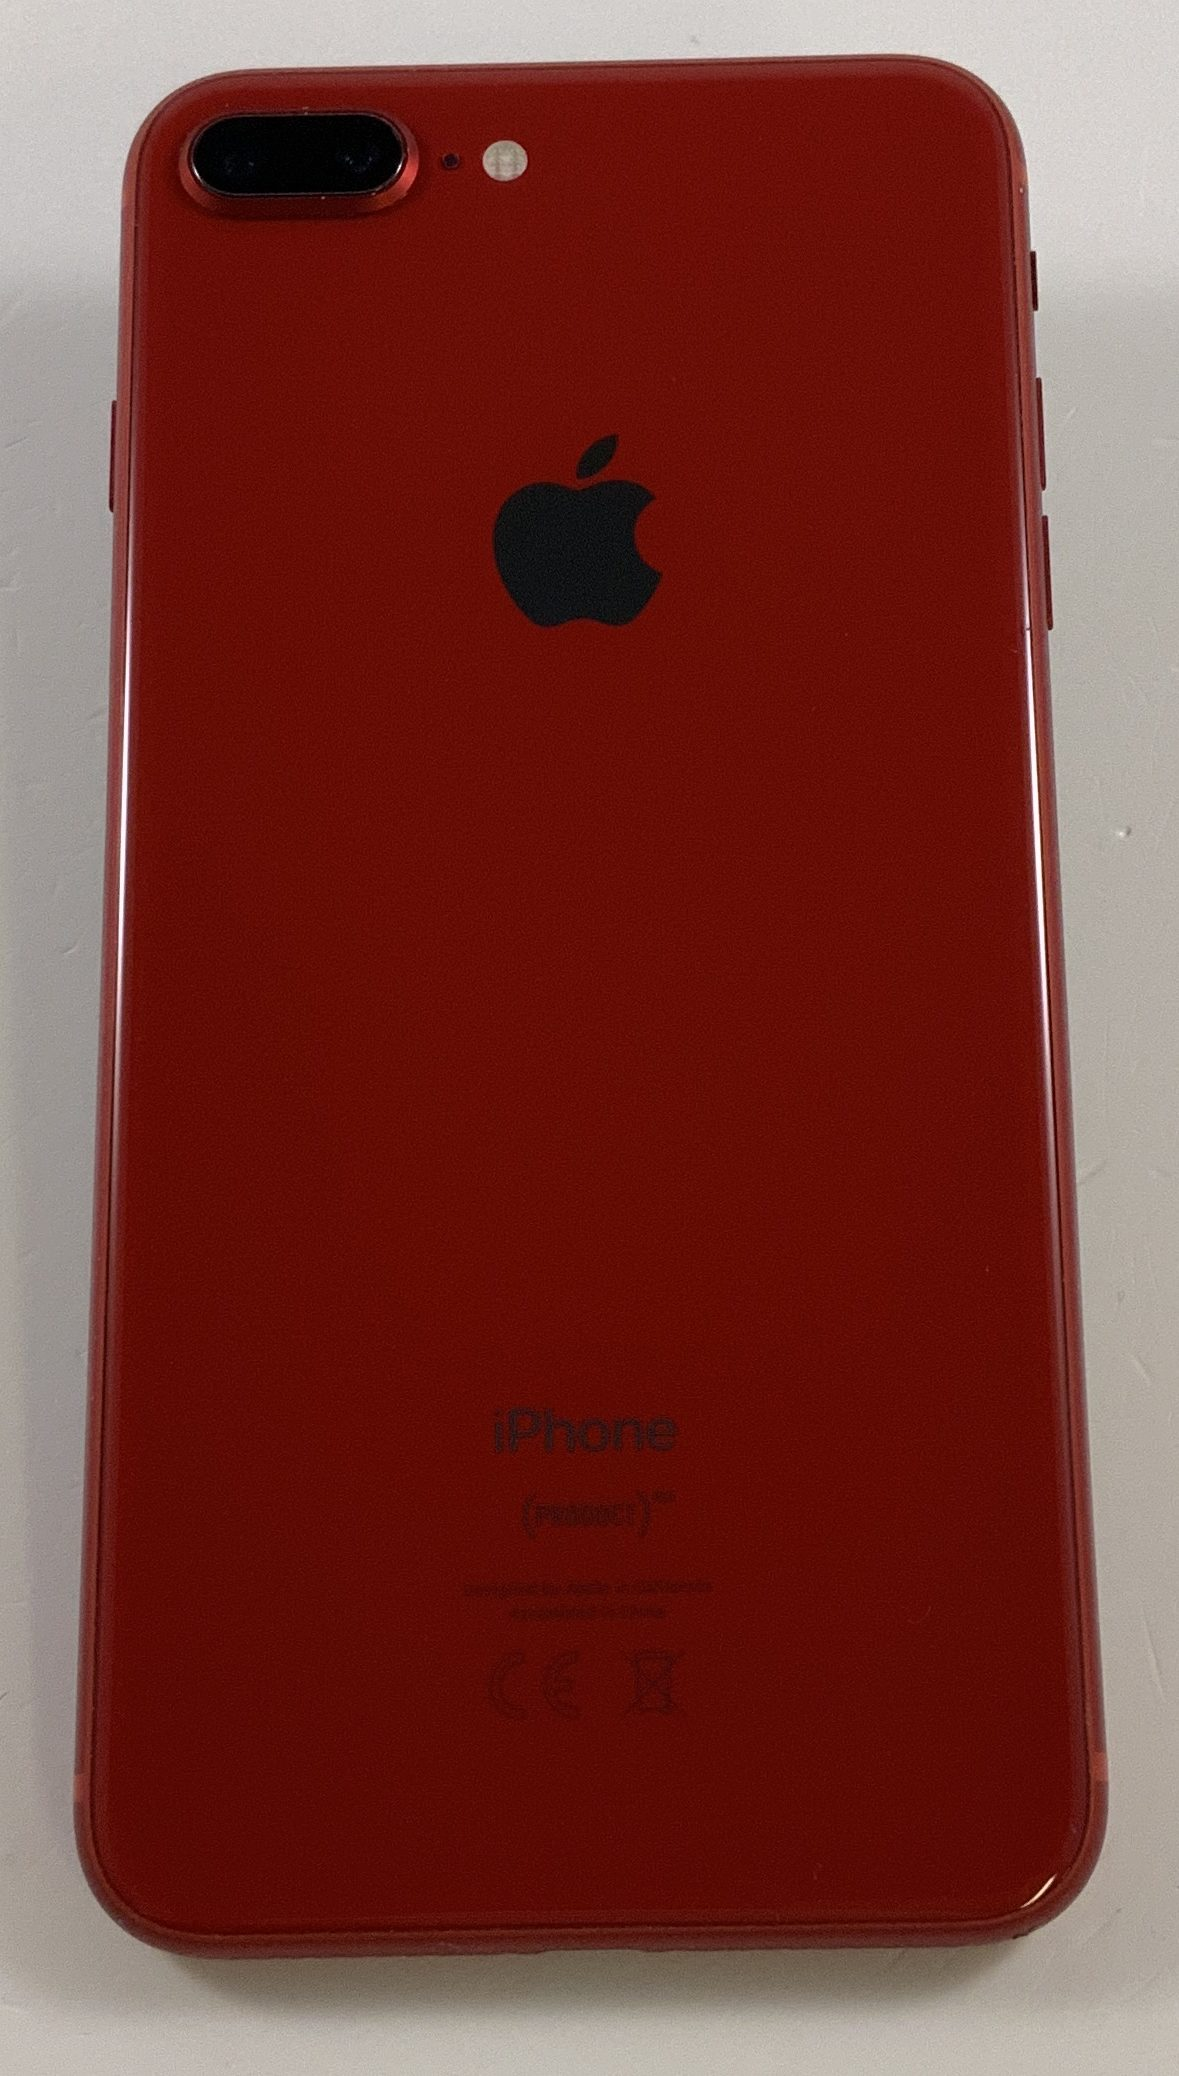 iPhone 8 Plus 64GB, 64GB, Red, image 2